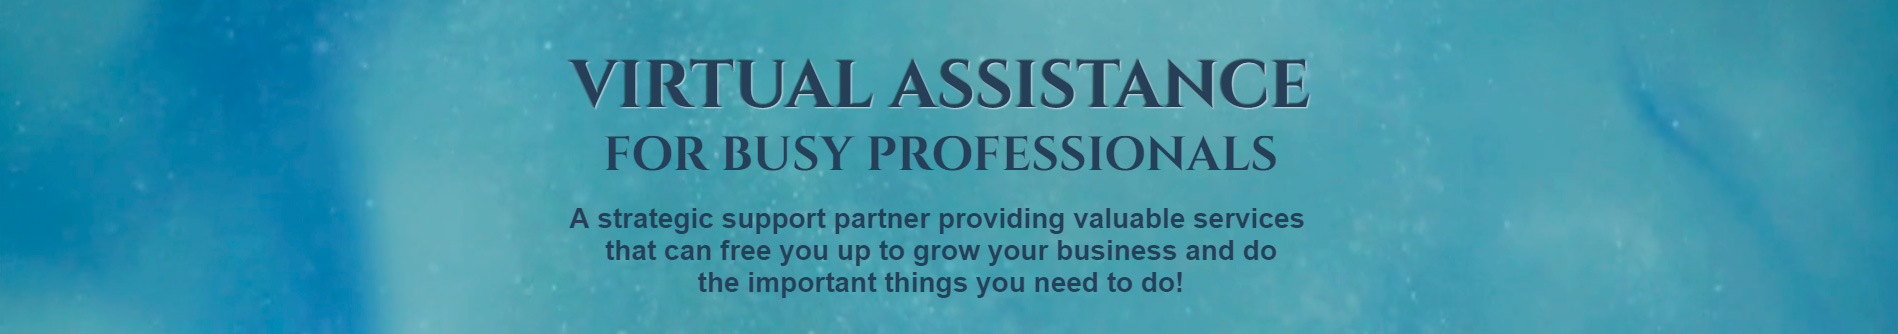 Virtual Assistance For Busy Professionals